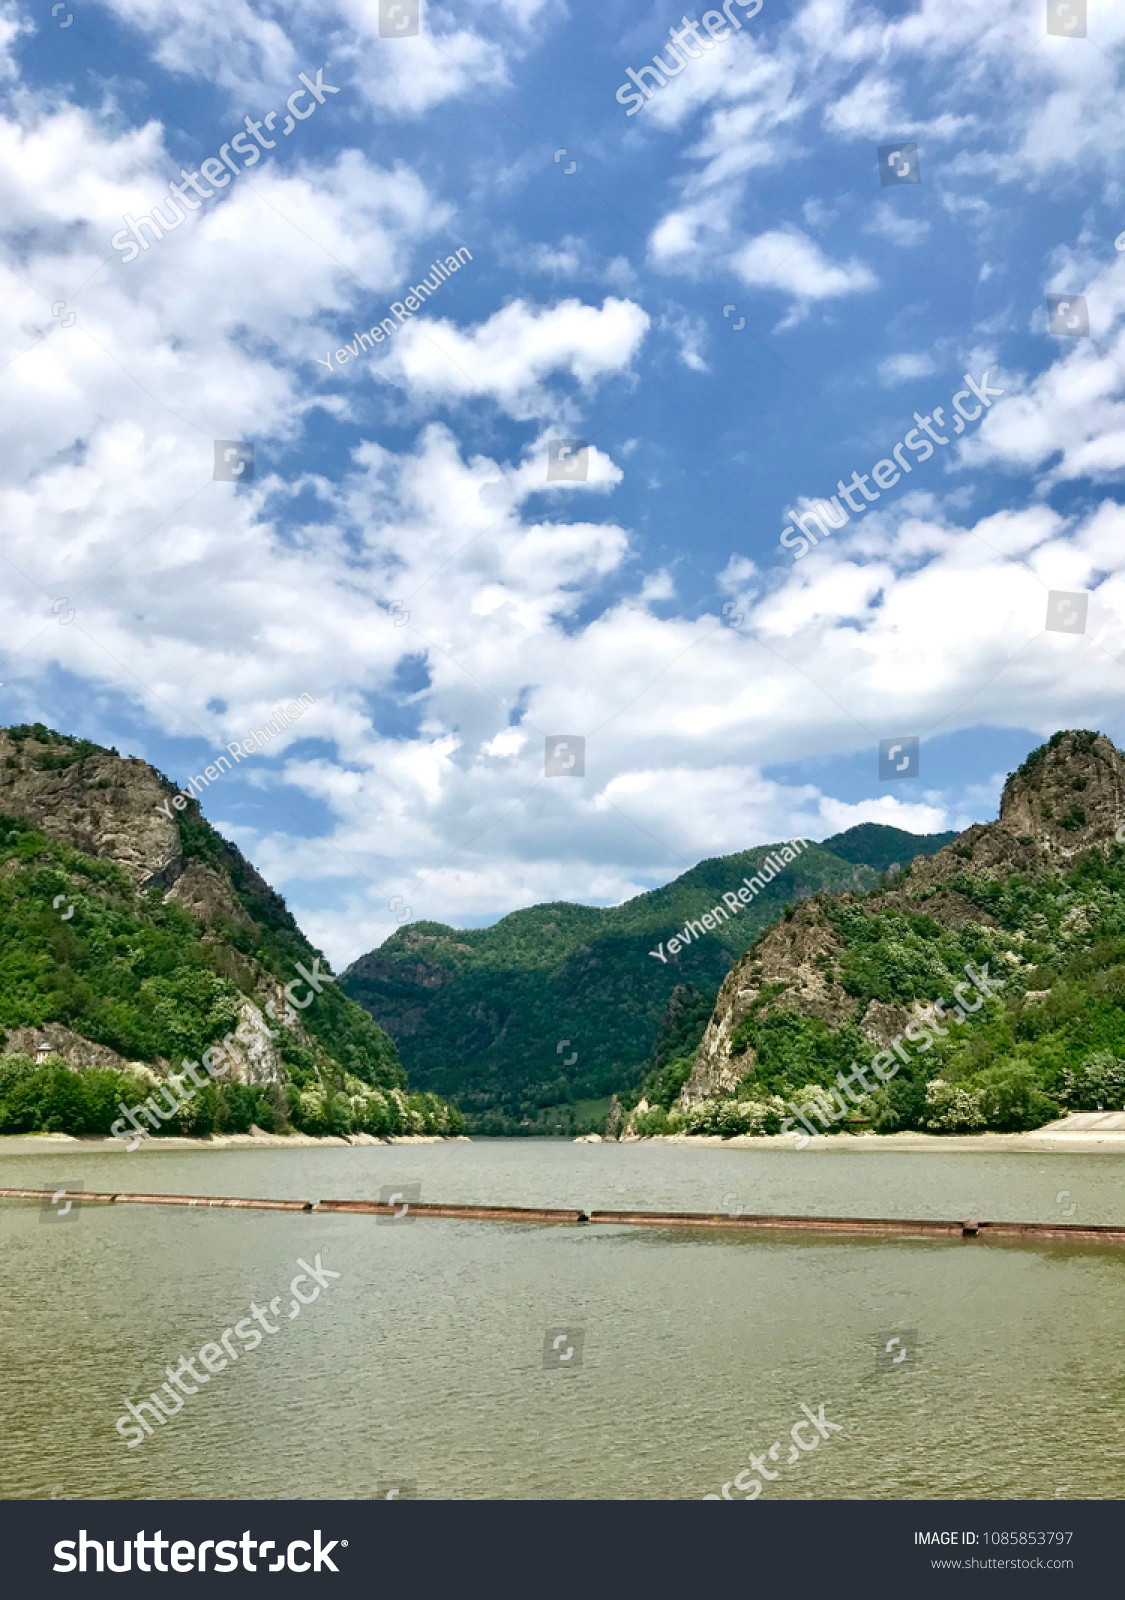 stock photo amazing summer landscapes romania road to the mountains lake green mountains sunny day desktop 1085853797